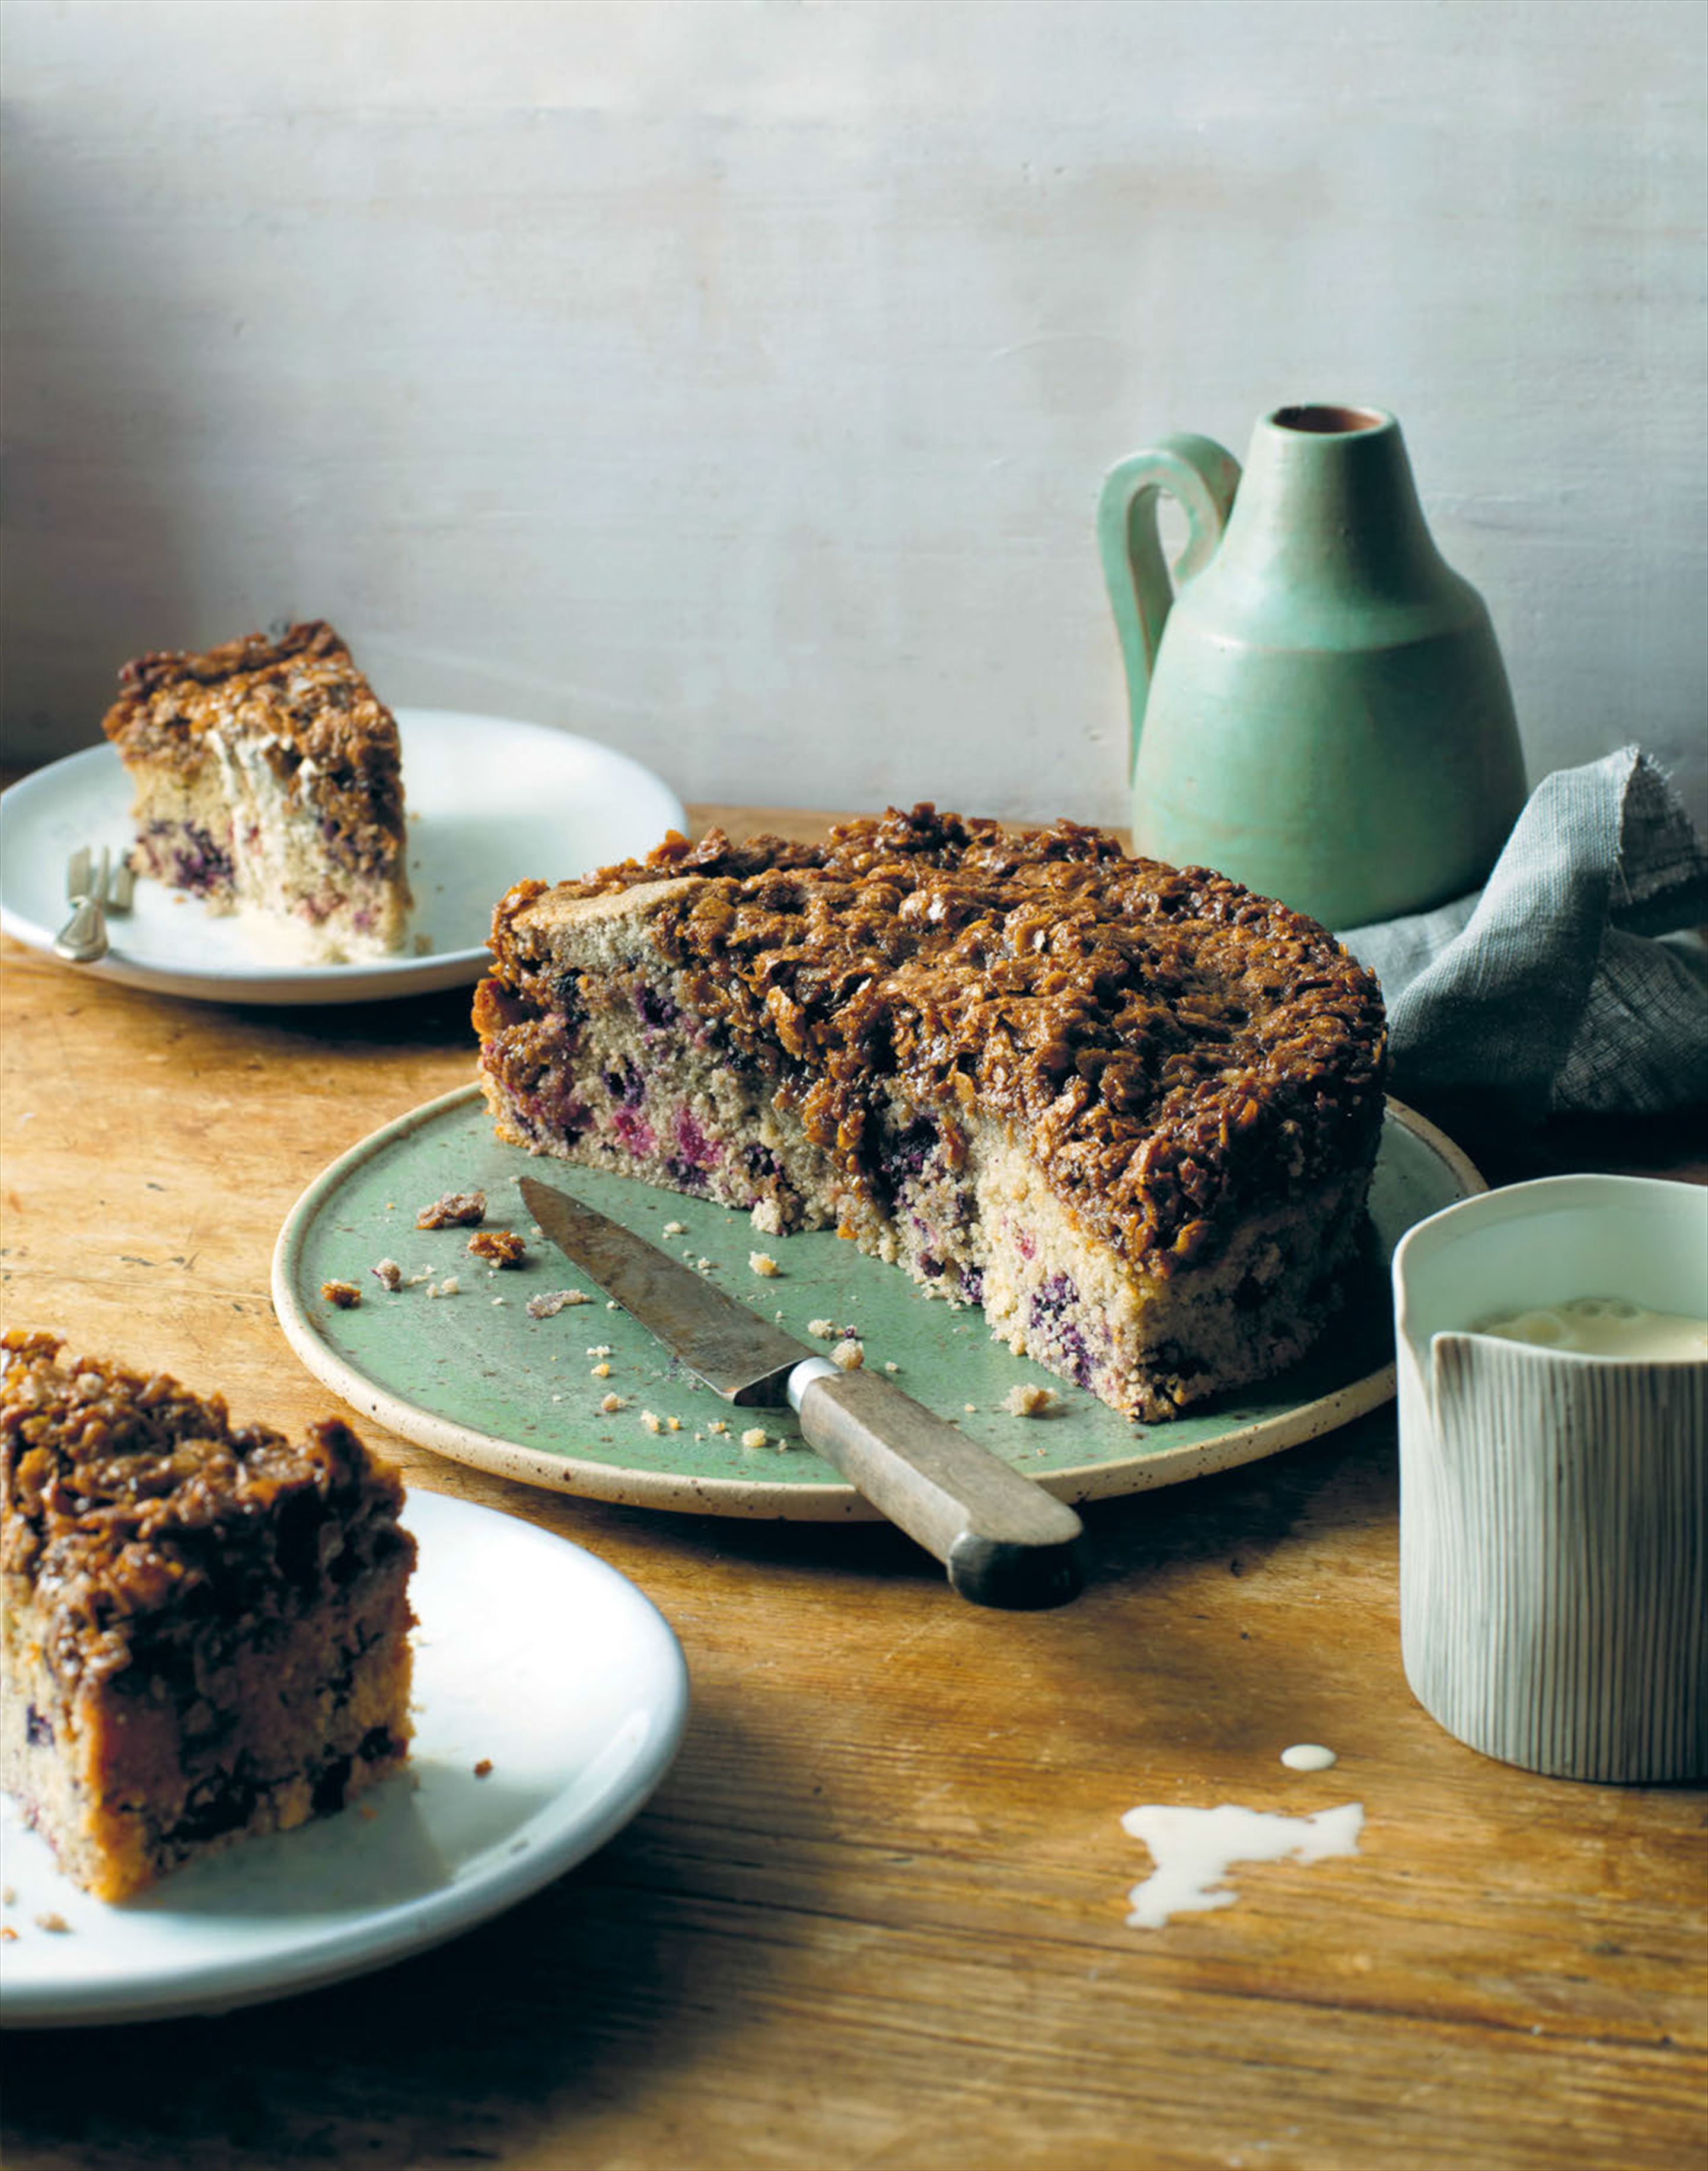 Dream cake with barley & berries